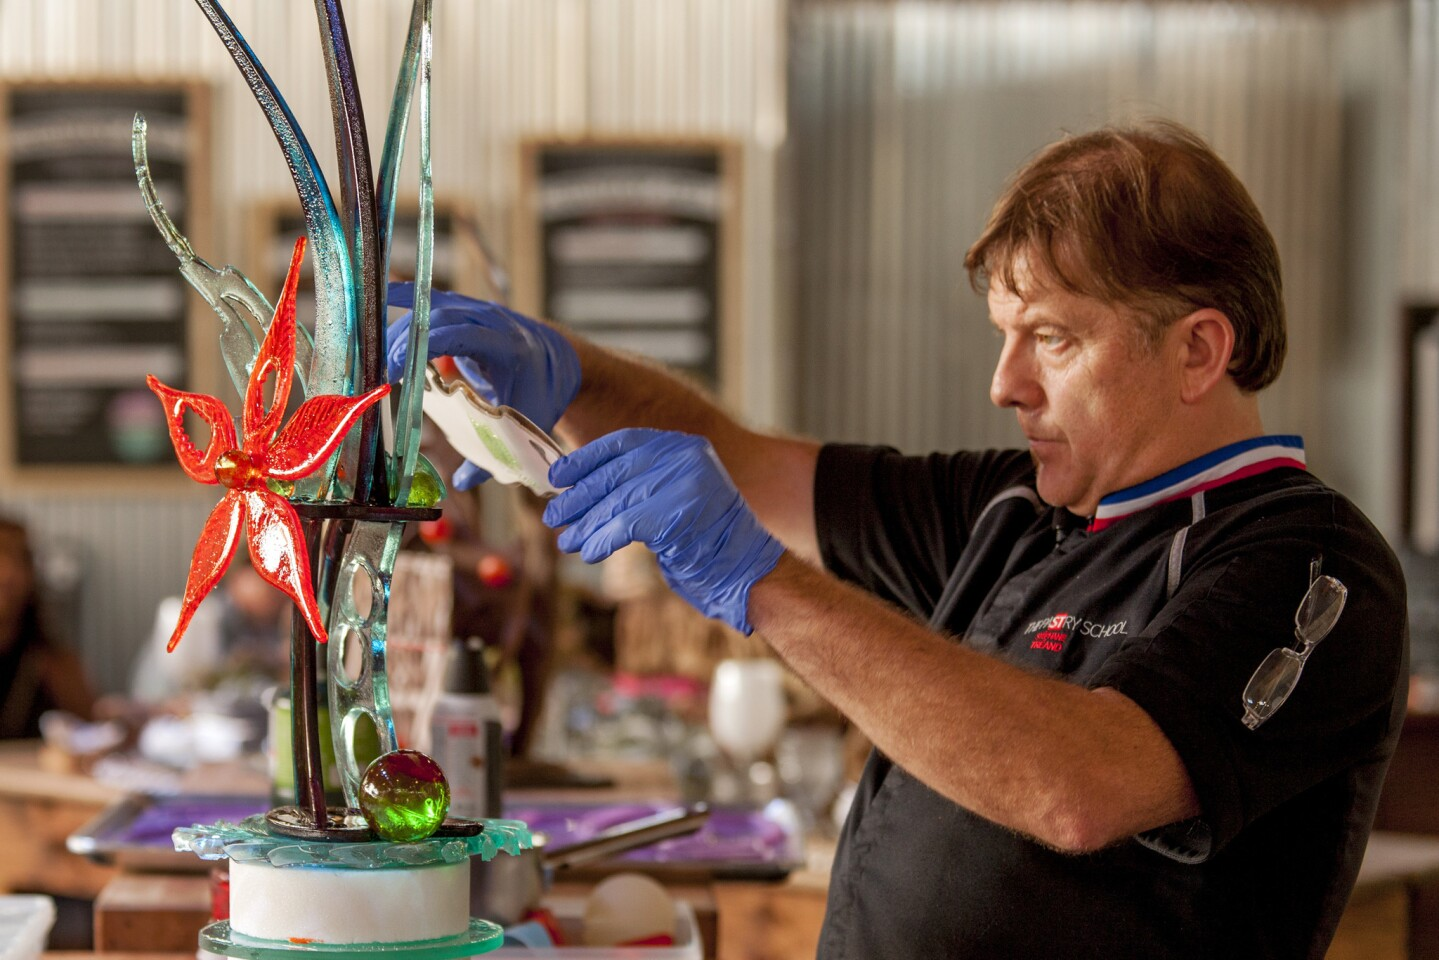 Pastry chef and master chocolatier Stephane Treand mounts a molded piece onto the sugar sculpture he created Sunday evening at the Orange County Fair.